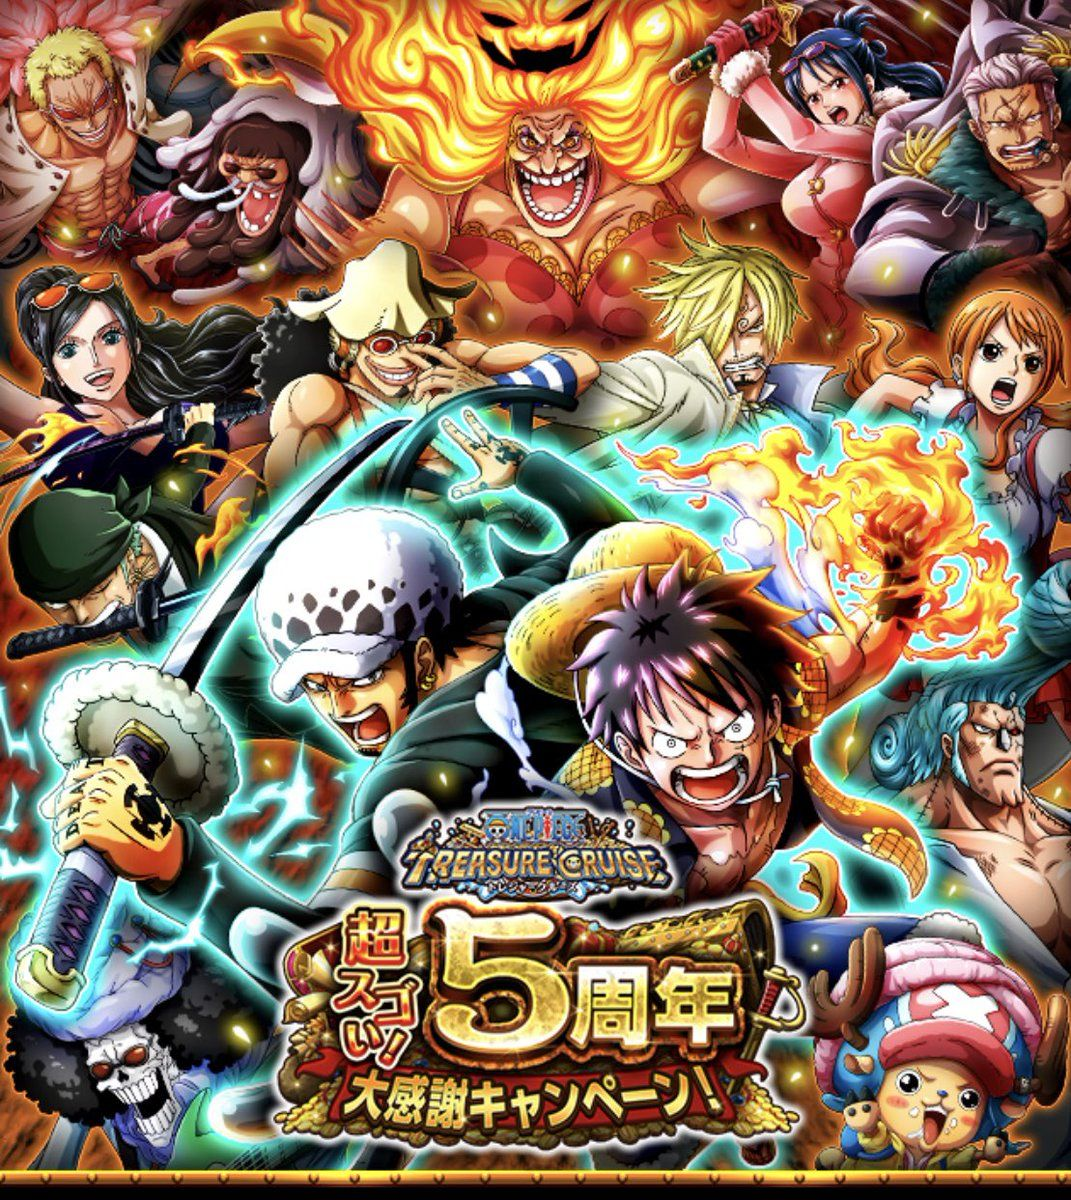 Pin by Carolyn Jack on Jhamaal One piece anime, Good